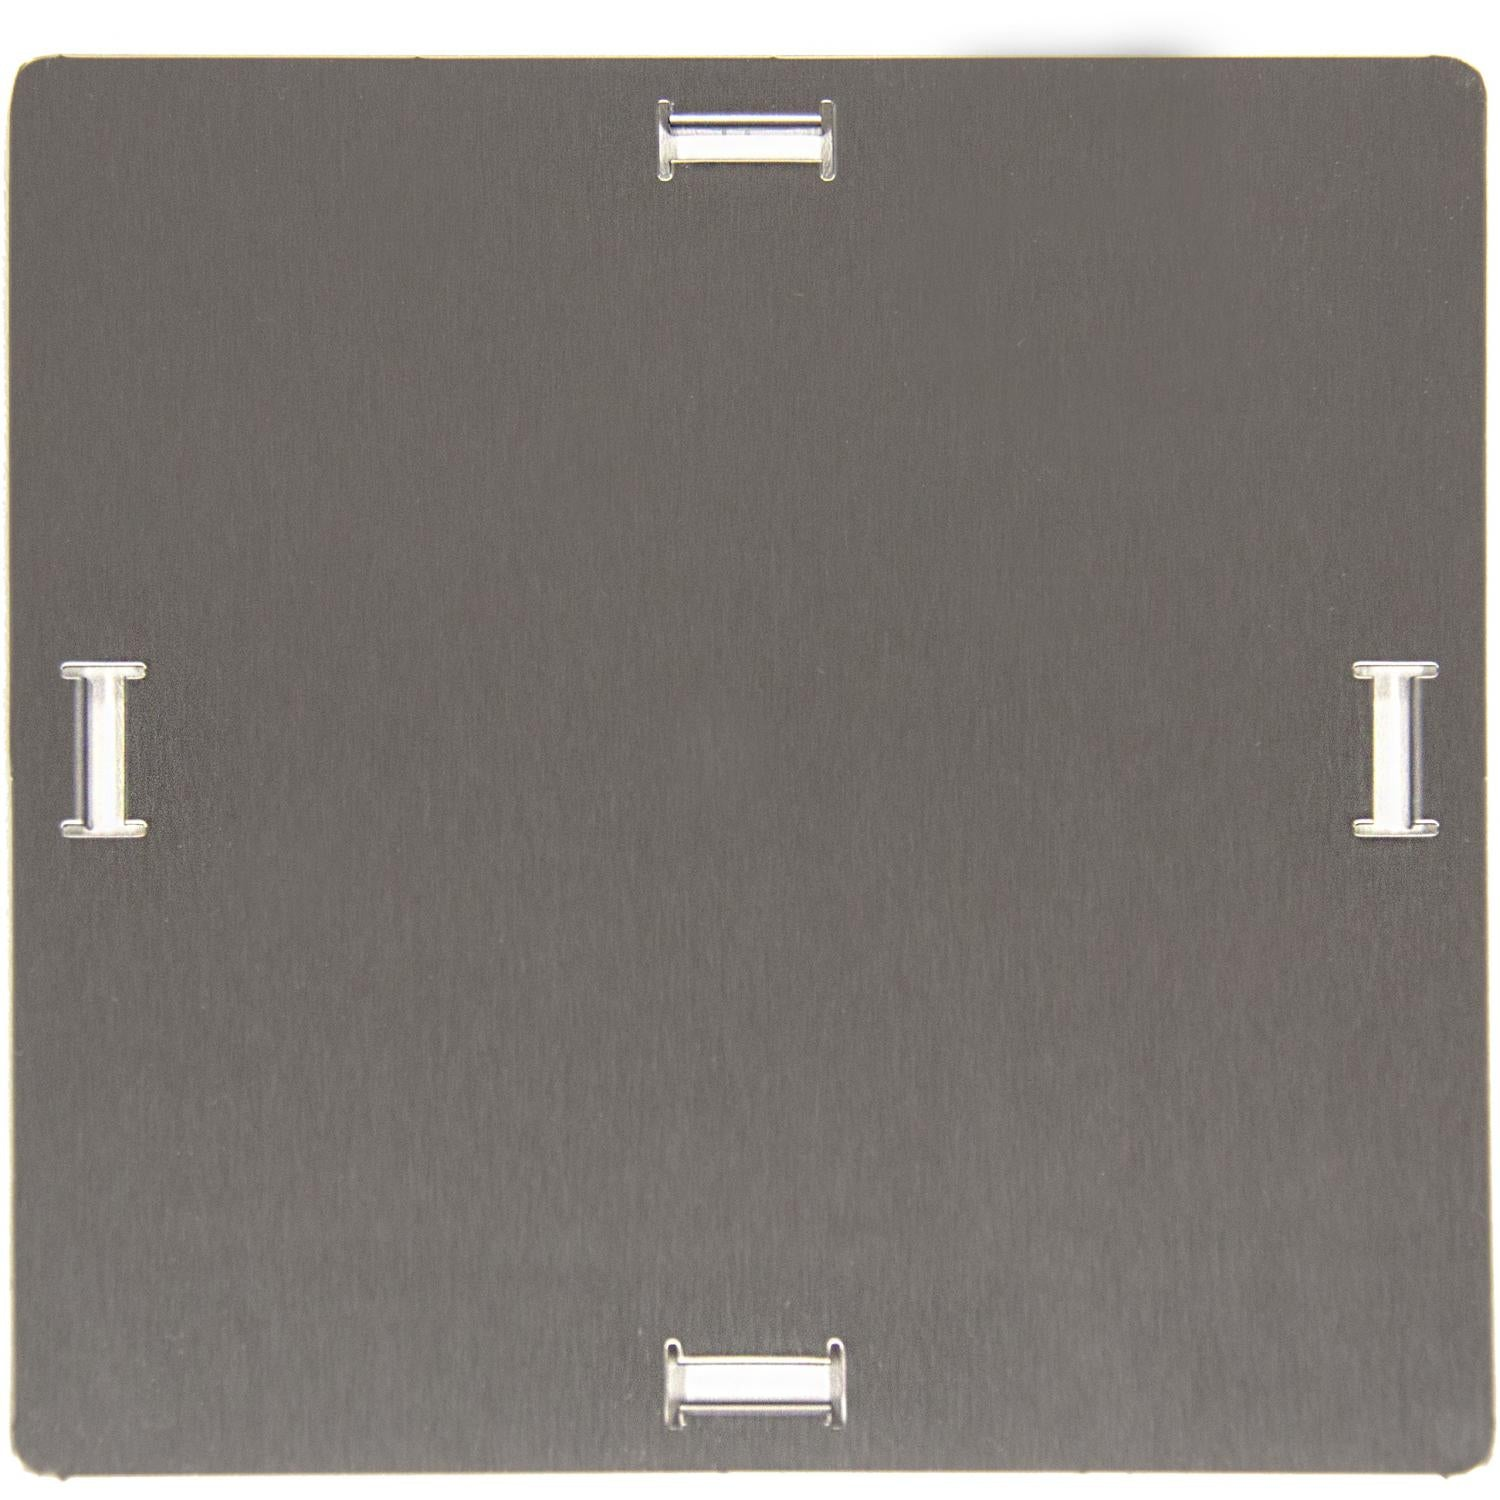 Blaze Stainless Steel Propane Tank Hole Cover For Grill Carts - BLZ-LPH-COVER